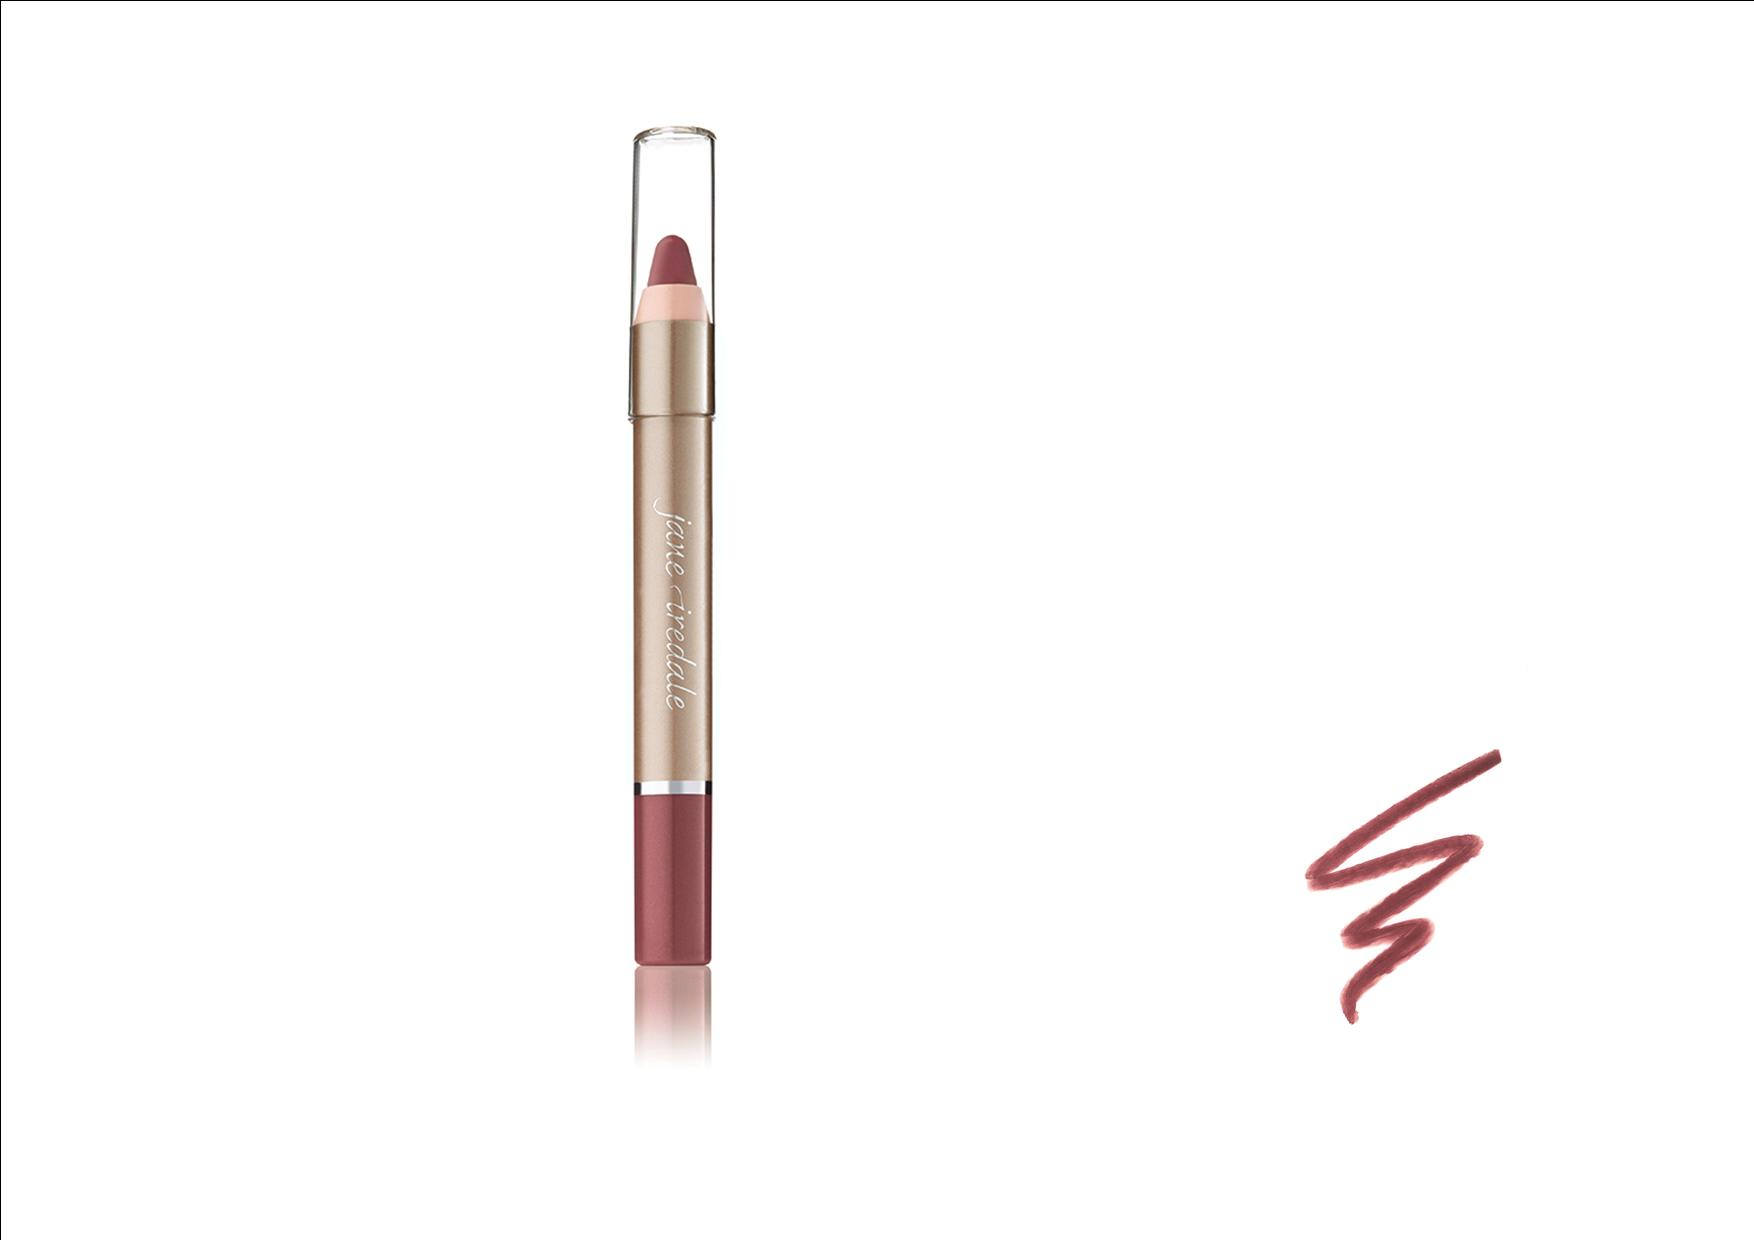 Jane Iredale Playon Lip Crayon Luscious